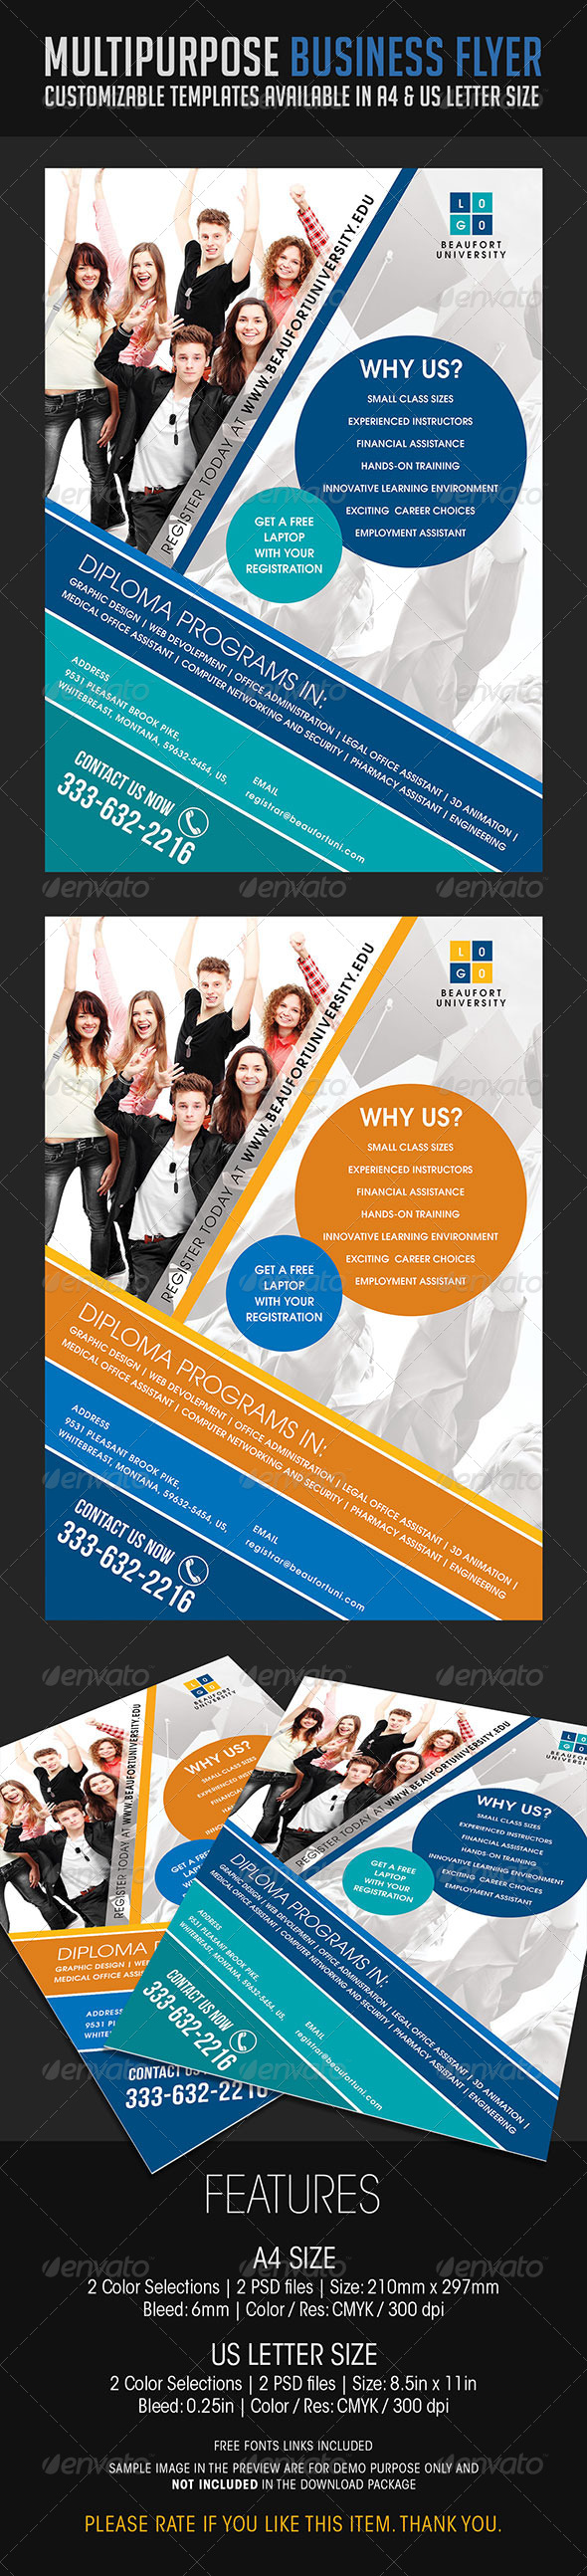 GraphicRiver Multipurpose Business Flyer 09 6839774